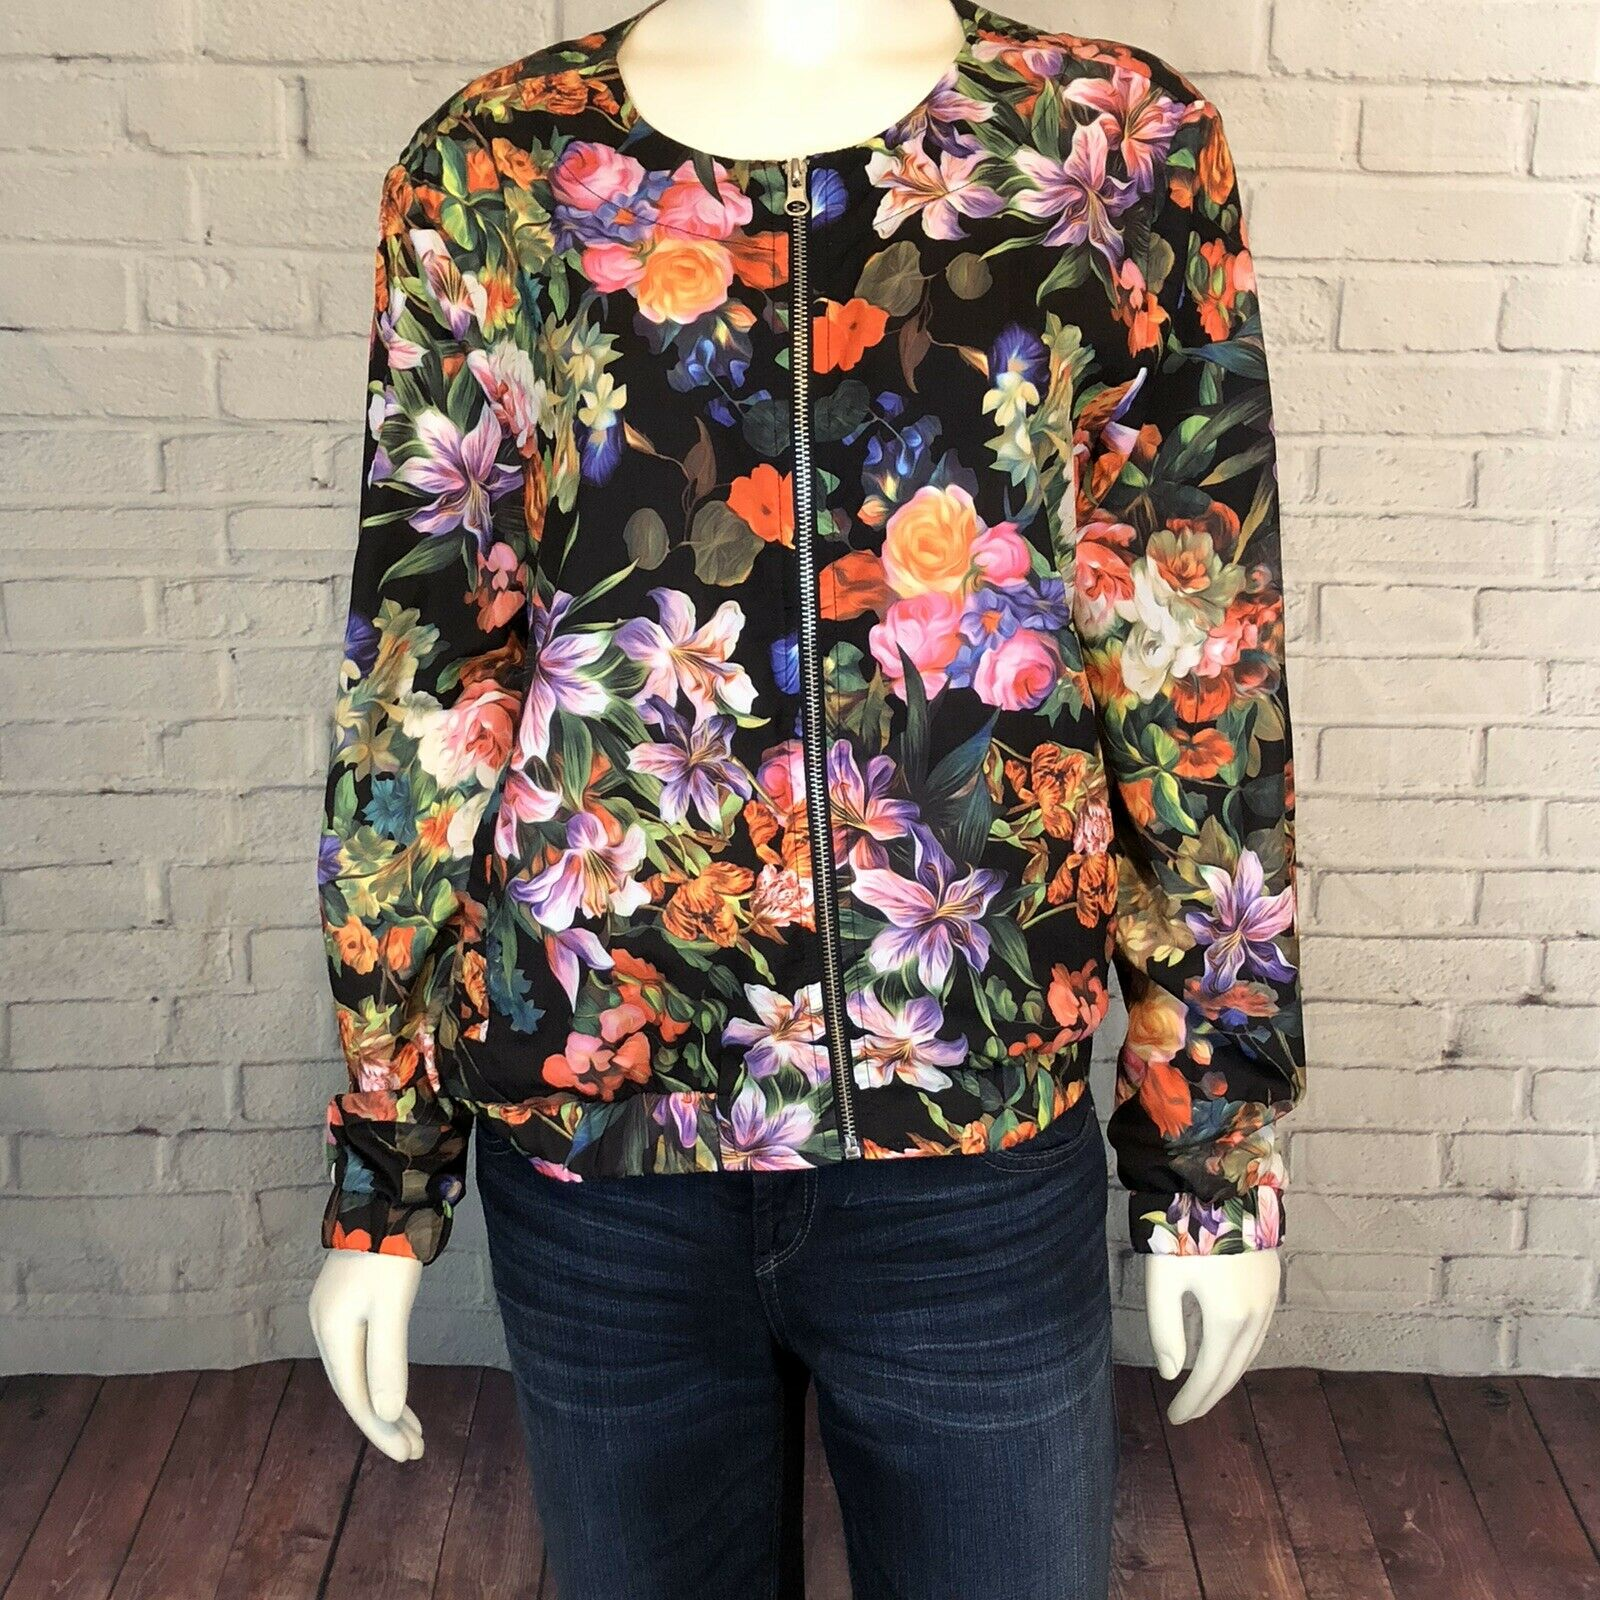 Baccini Floral Zip Up Jacket Light Wight Size M Travel Leisure Cruise Wear